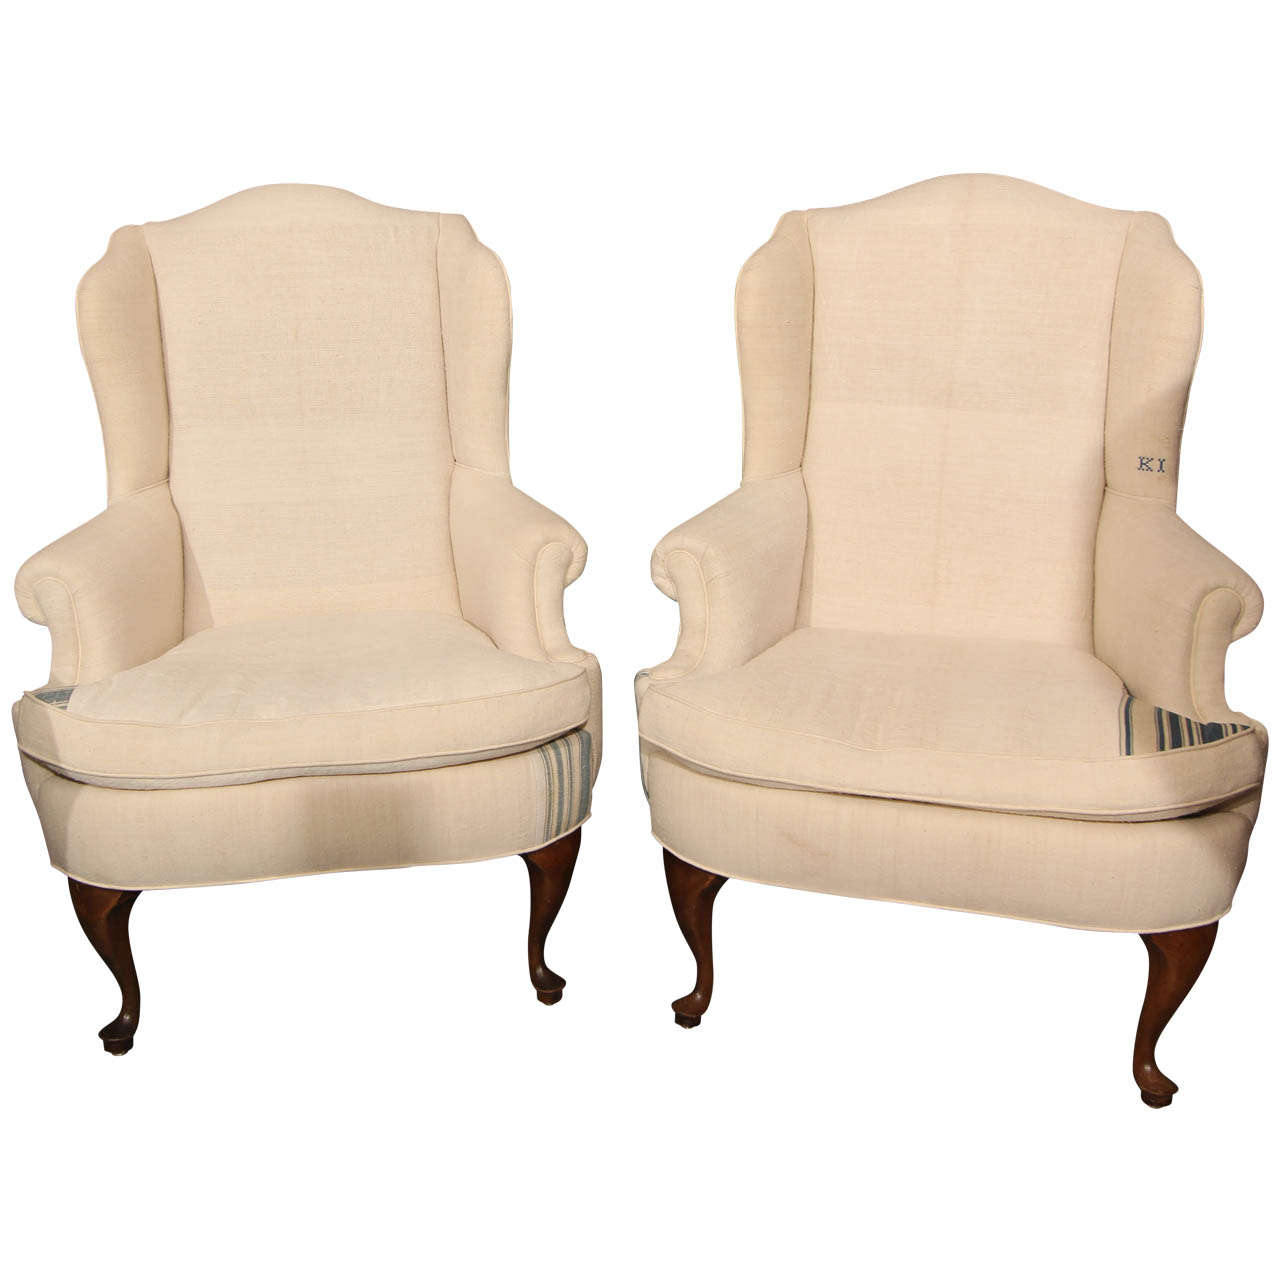 arm chairs for sale pool chair accessories pair of linen rolled armchairs at 1stdibs